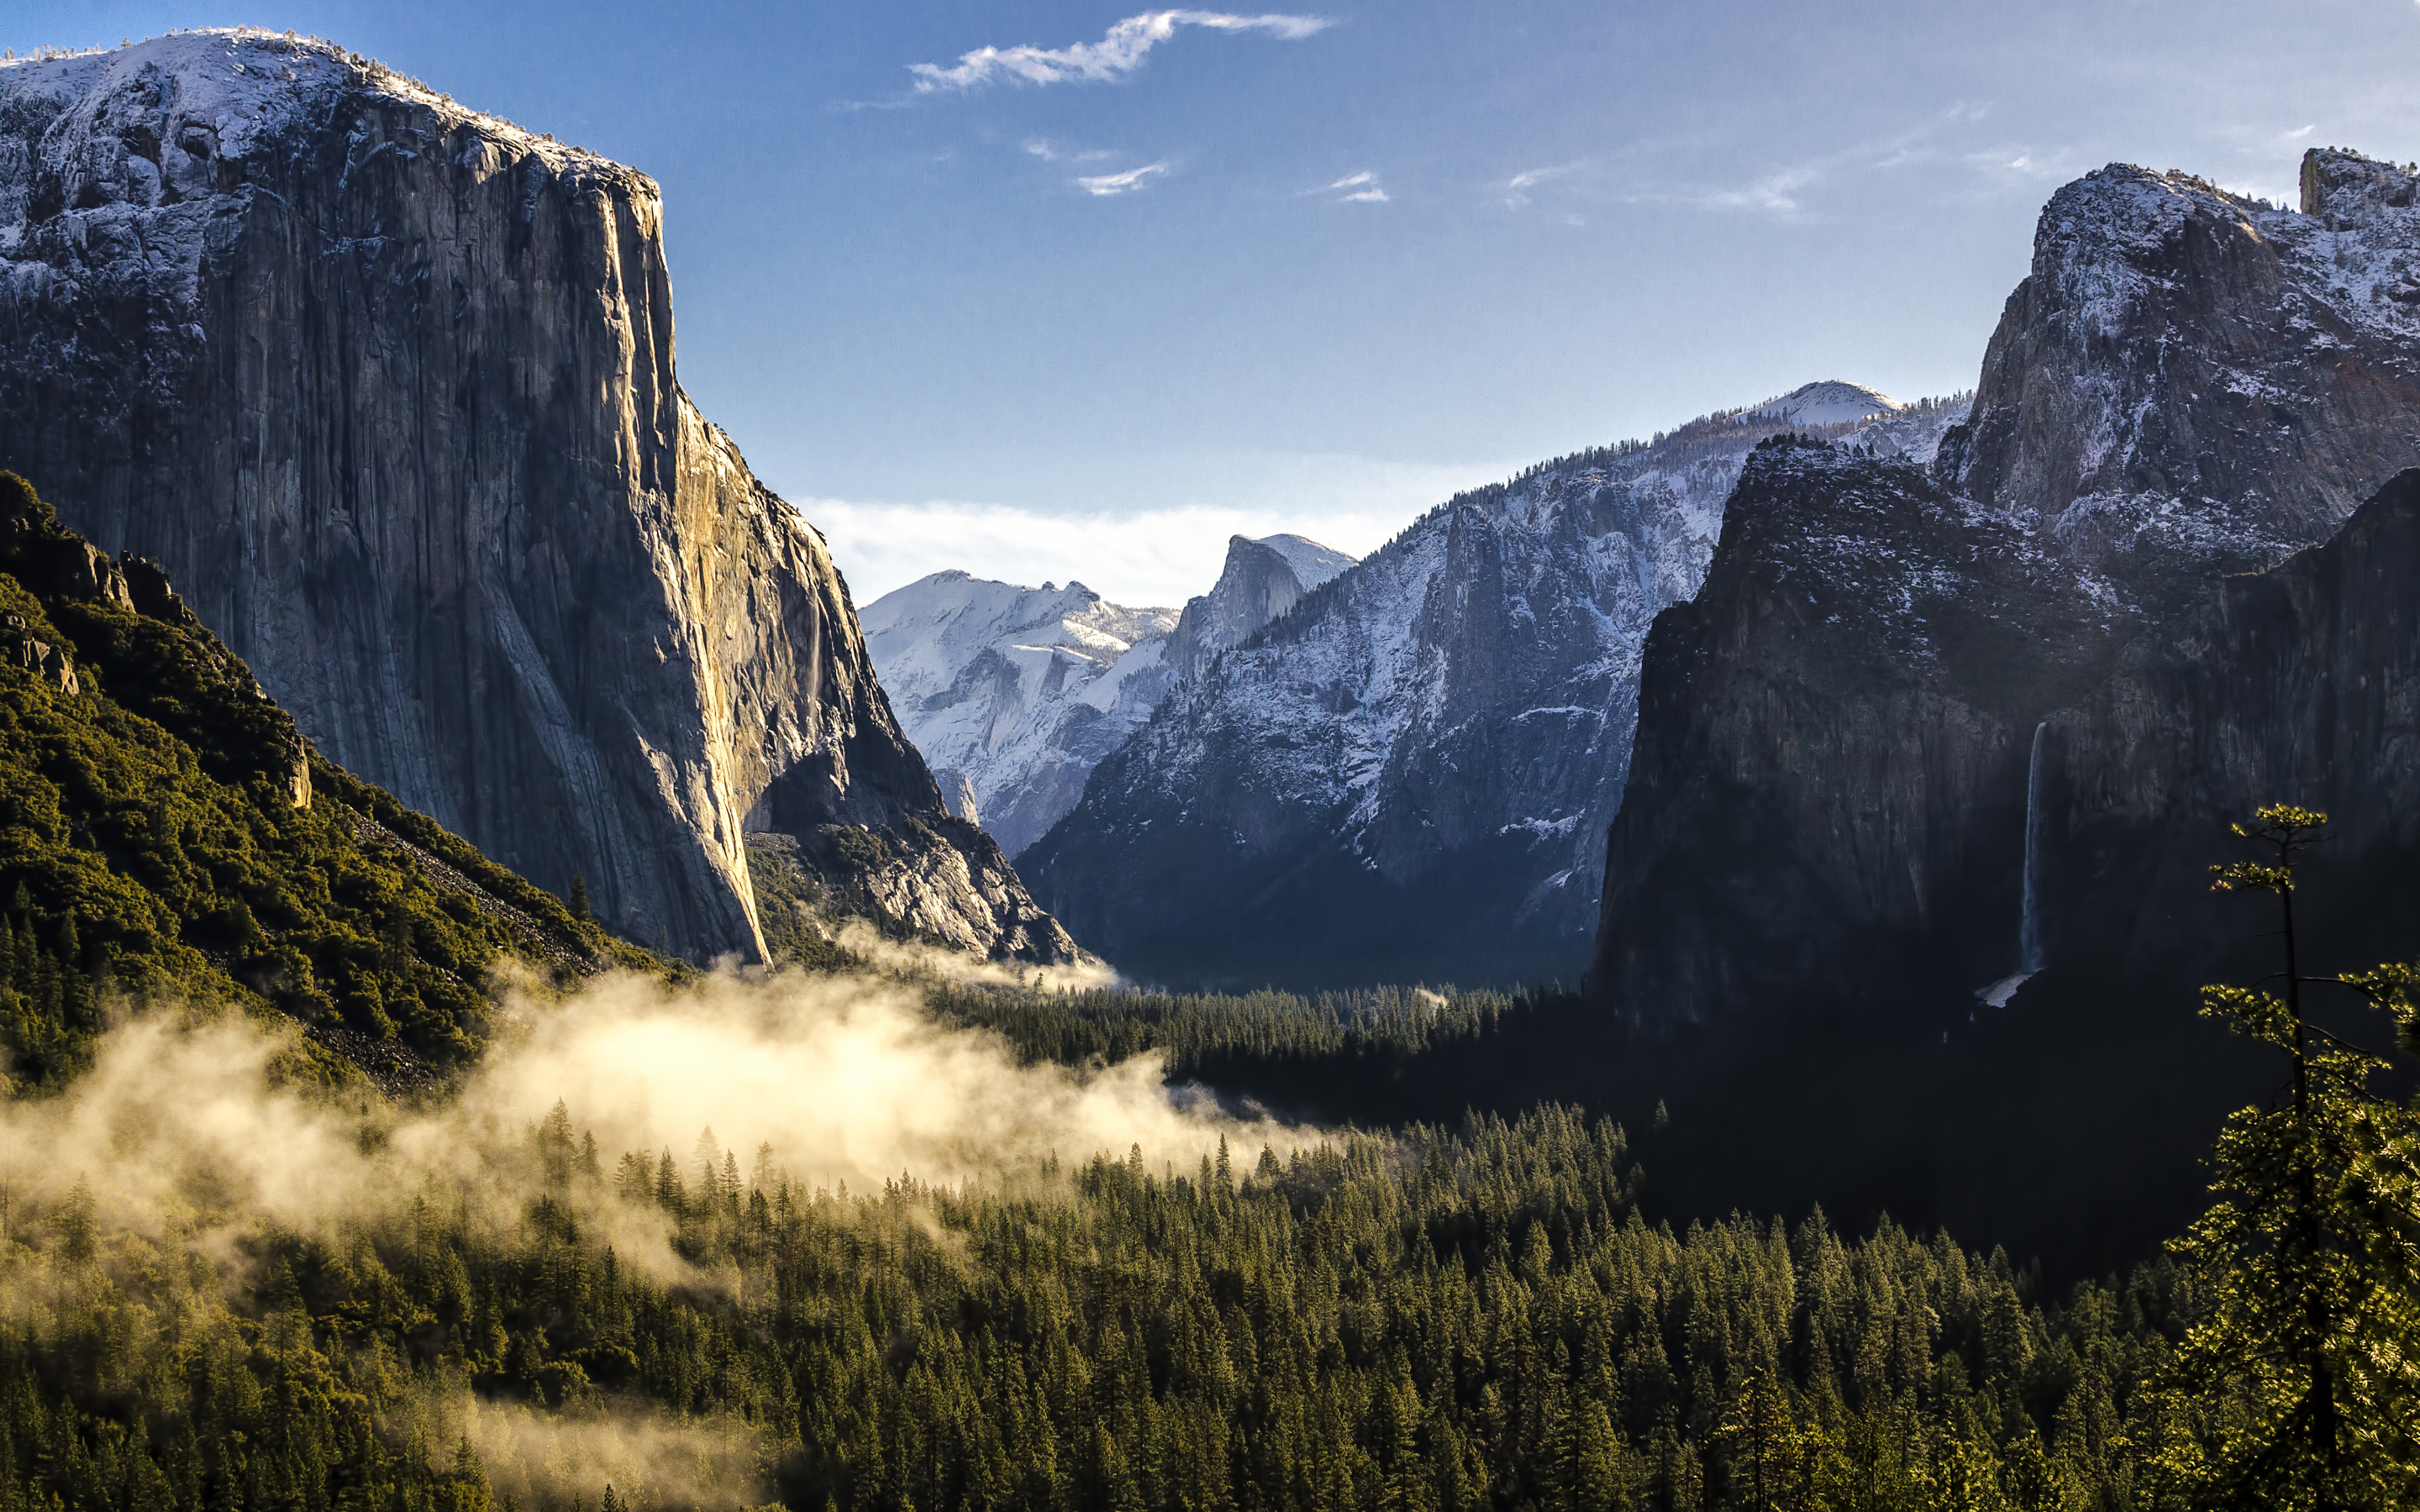 OS X Yosemite Desktop Backgrounds 2880x1800